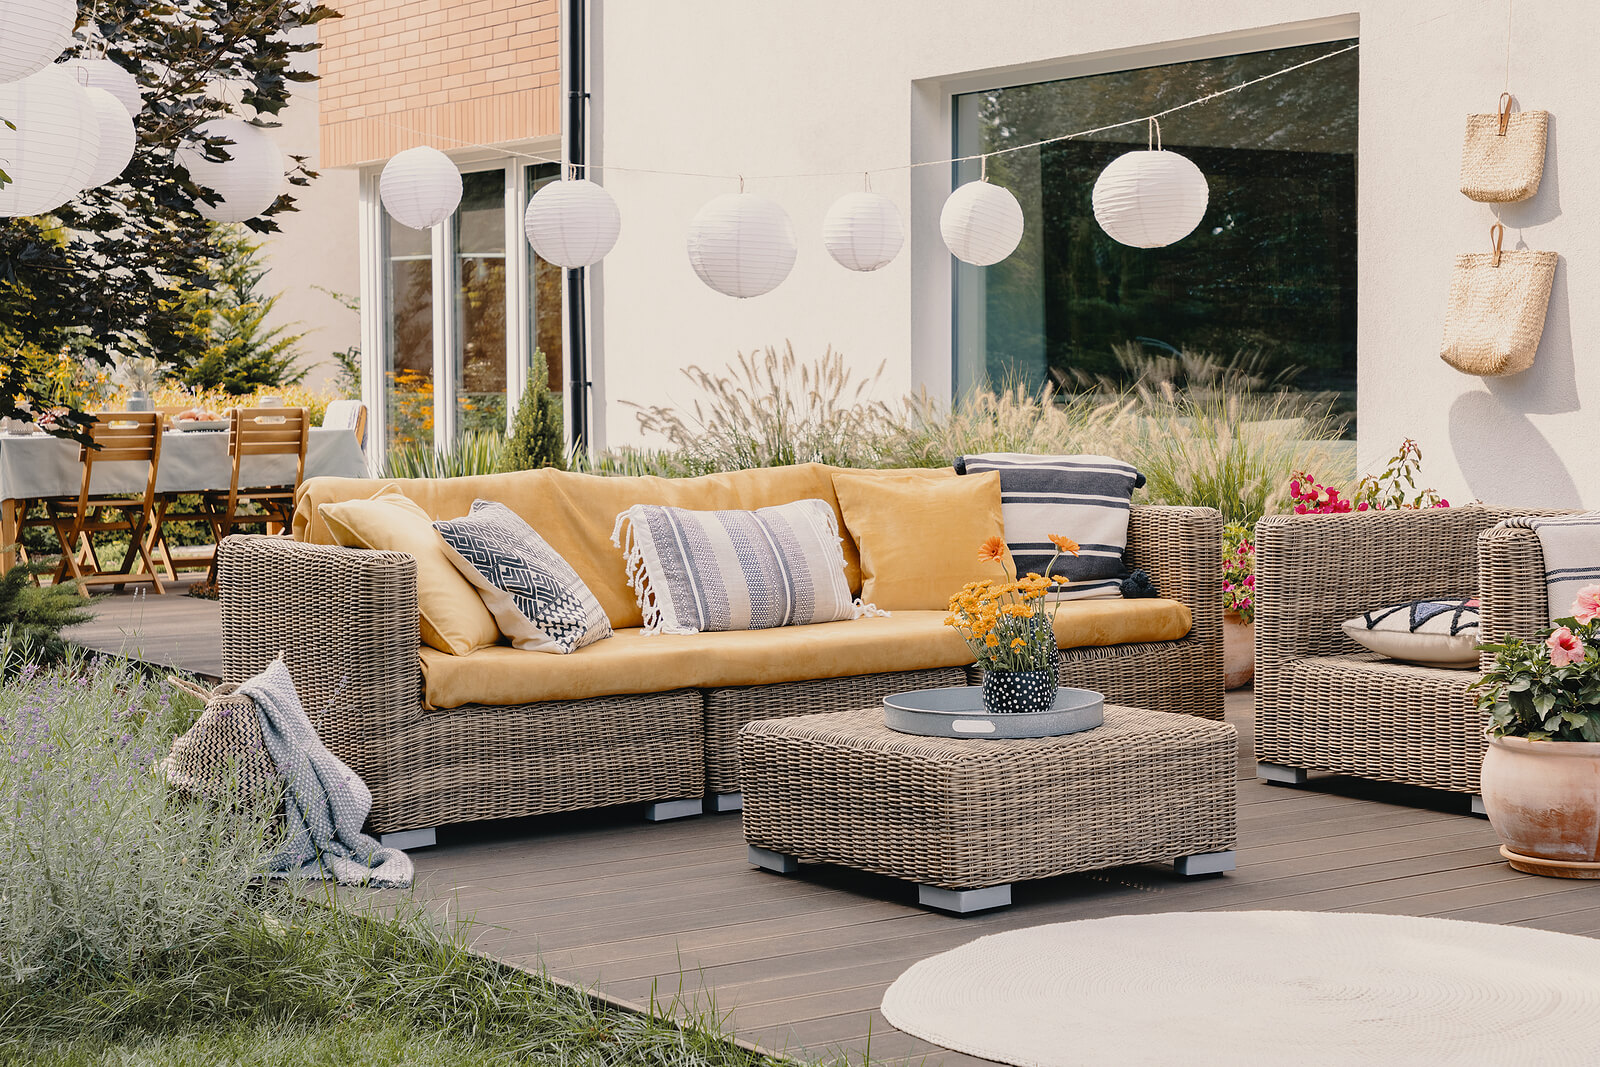 Rattan table and furniture set for outdoor dining